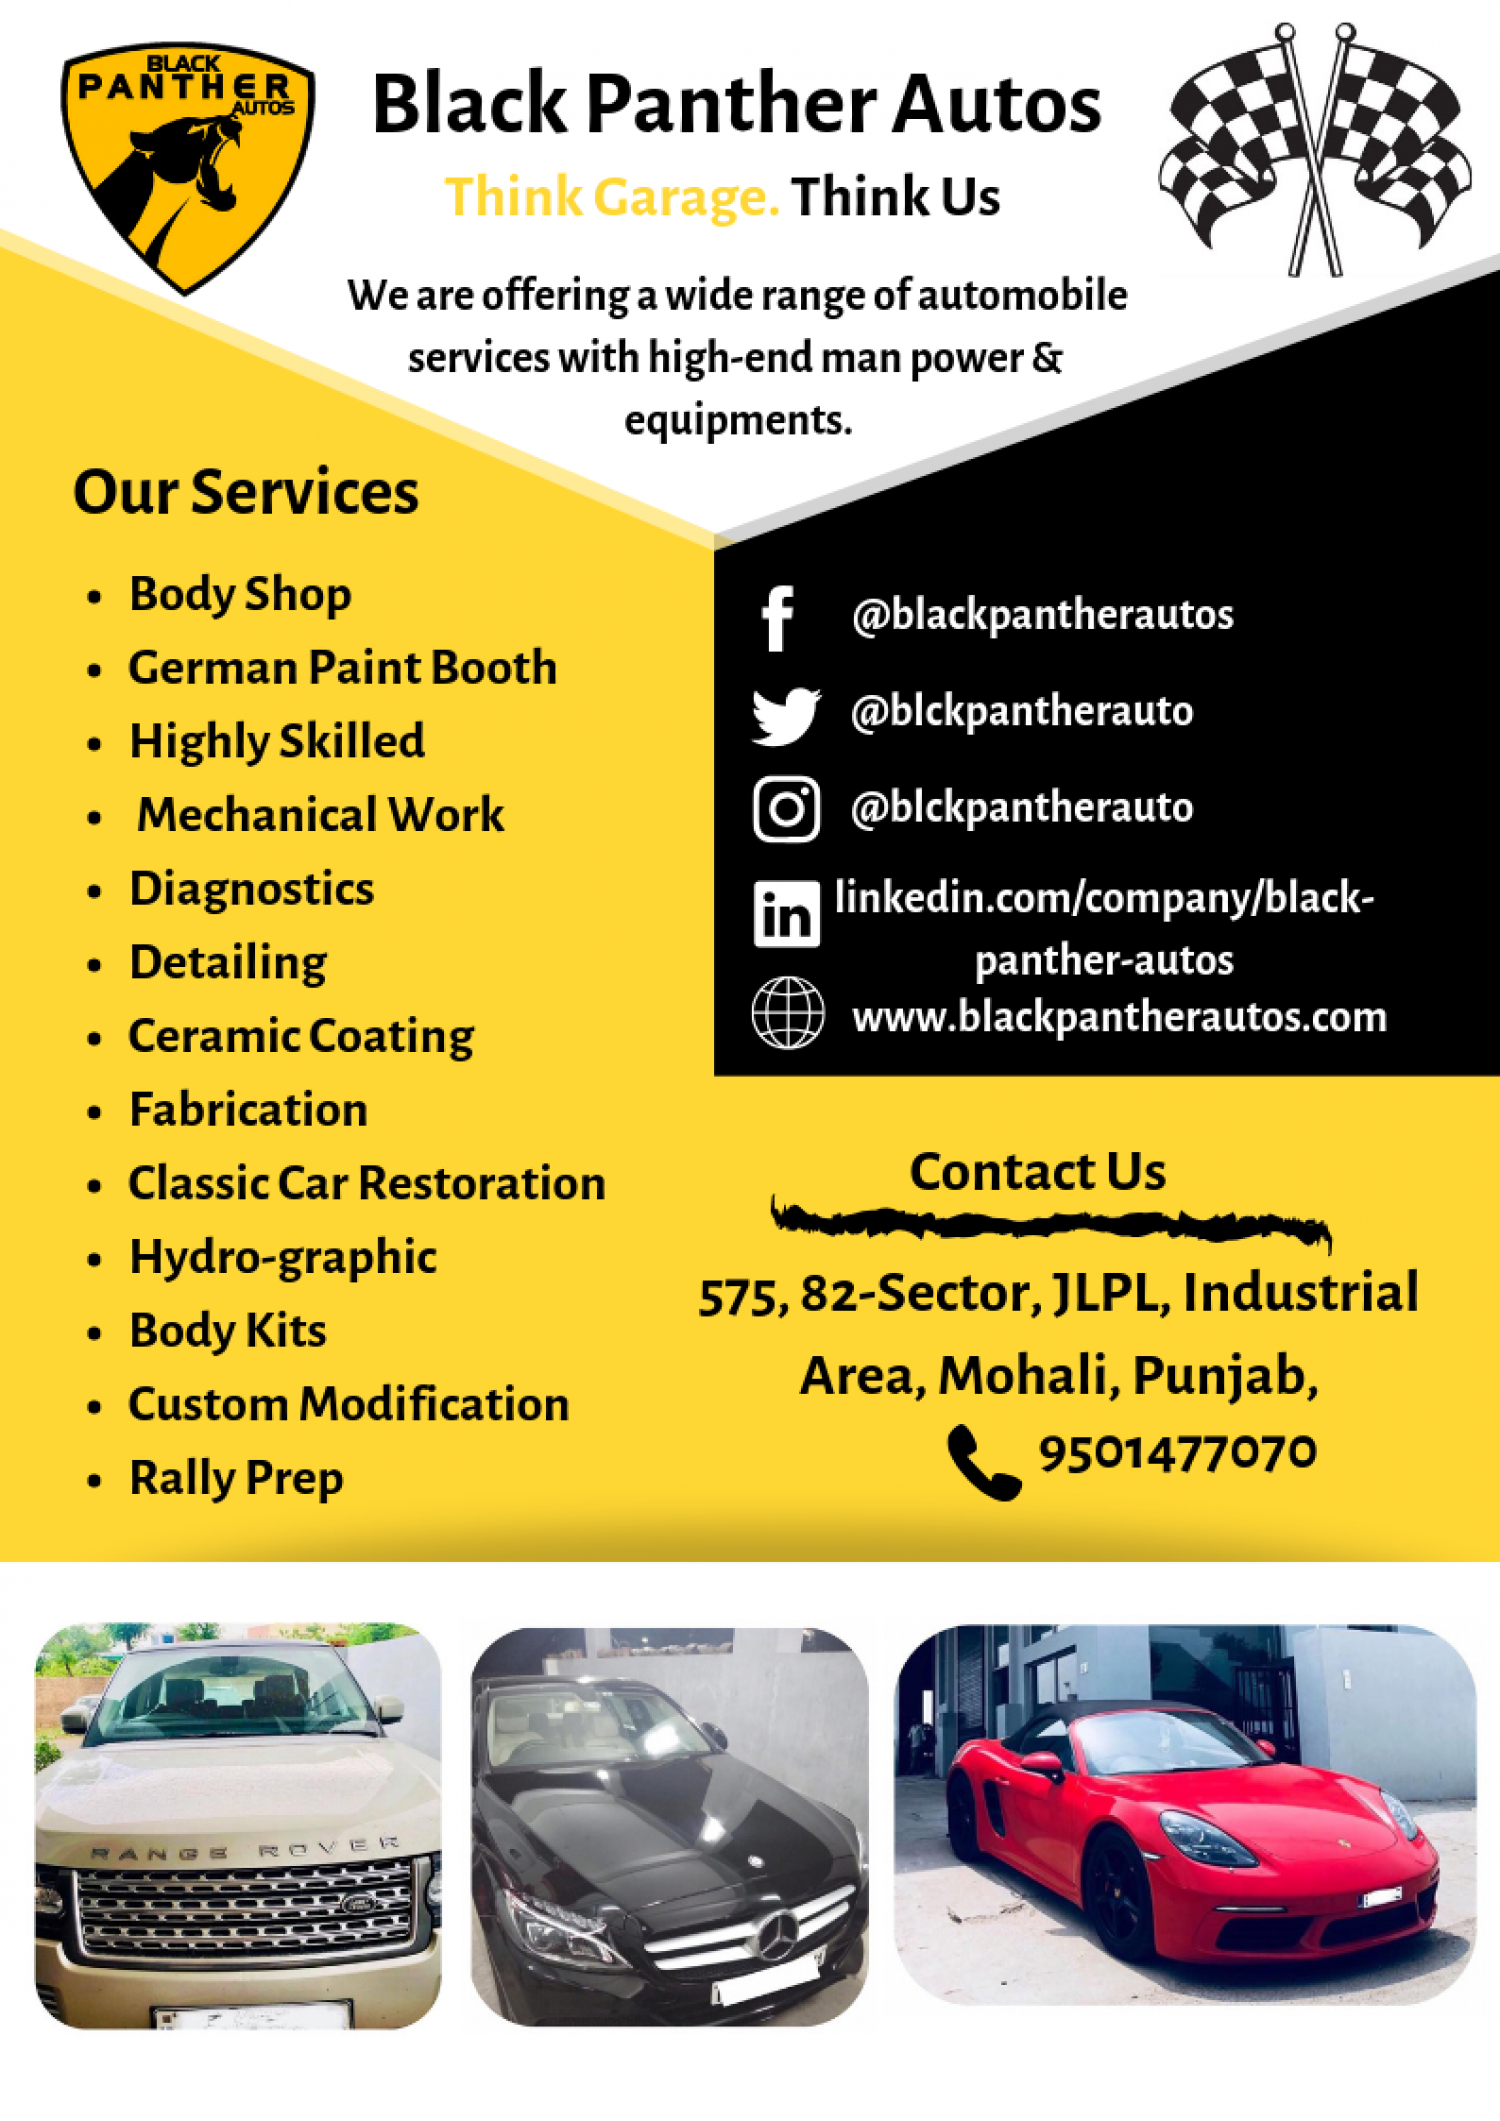 Black Panther Autos | Luxury Car Repair and Service Workshop Infographic